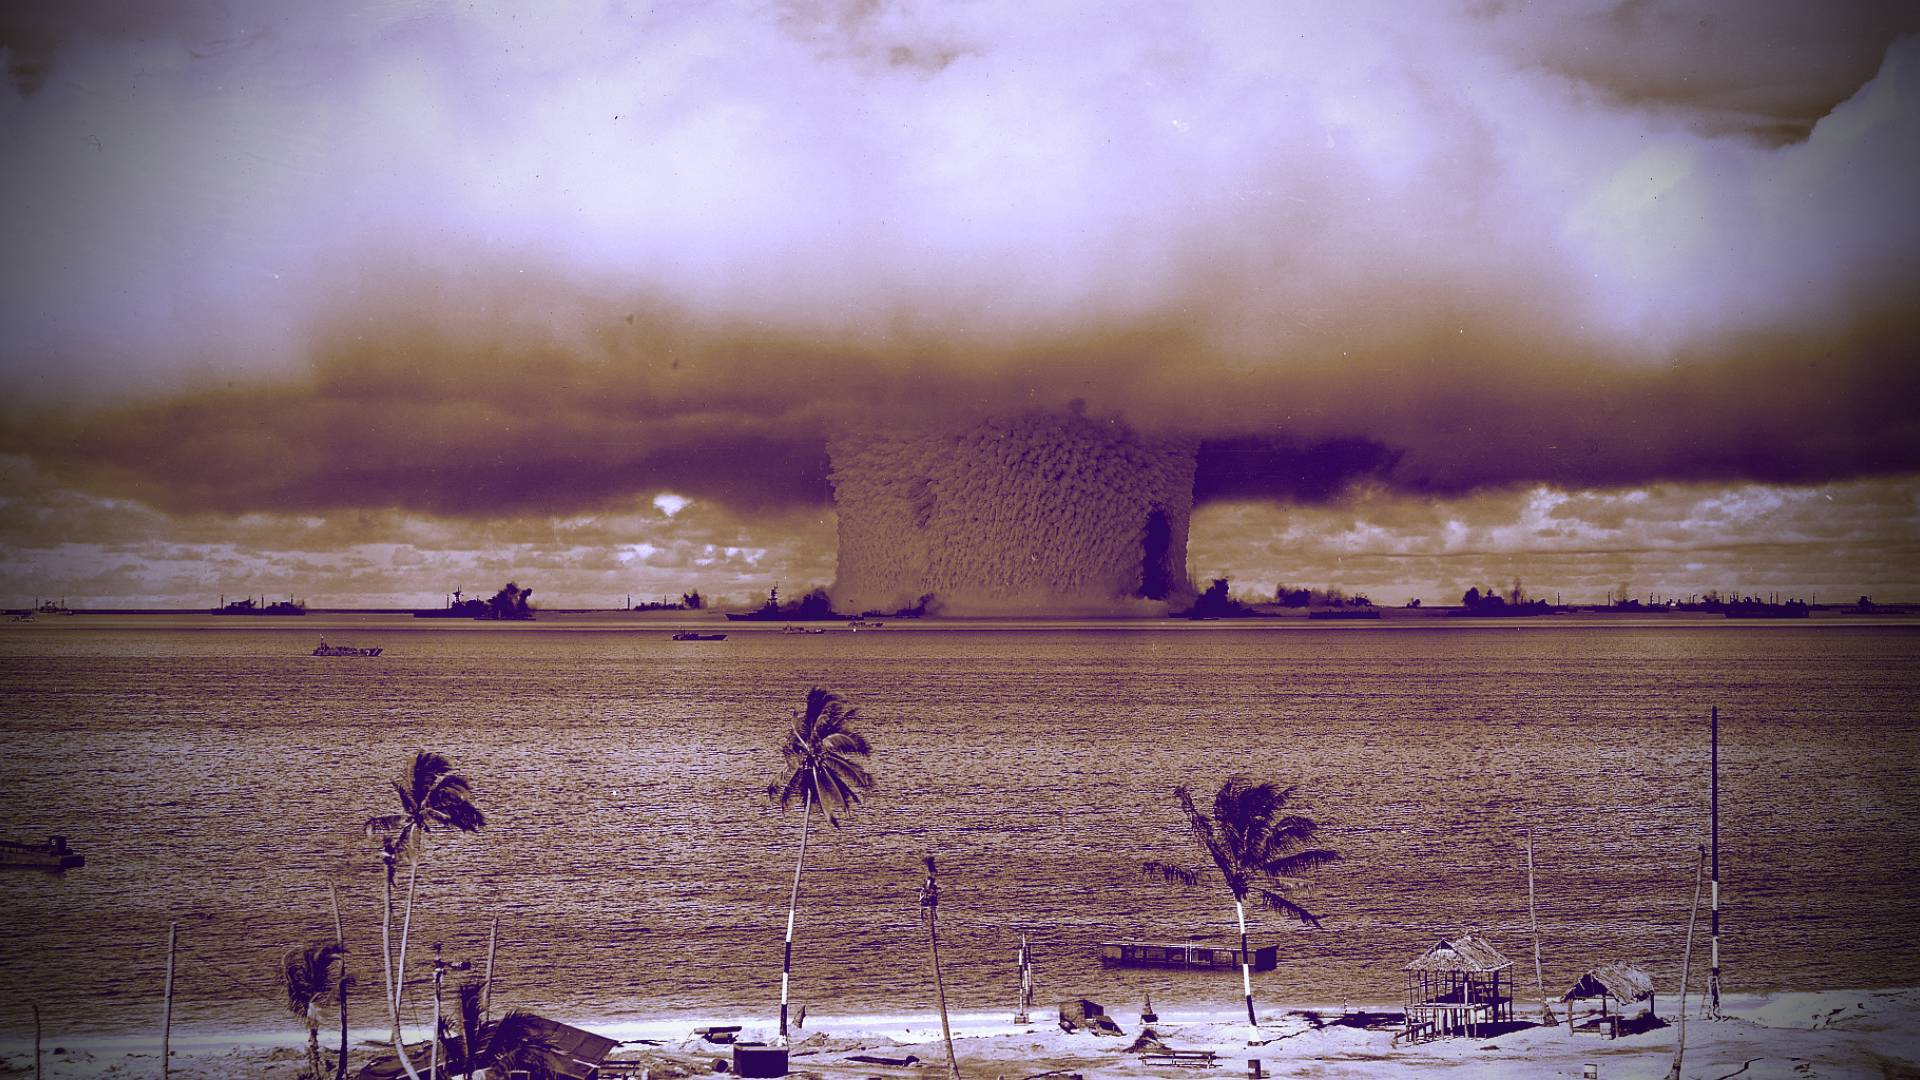 hd wallpapers atomic explosion - photo #35